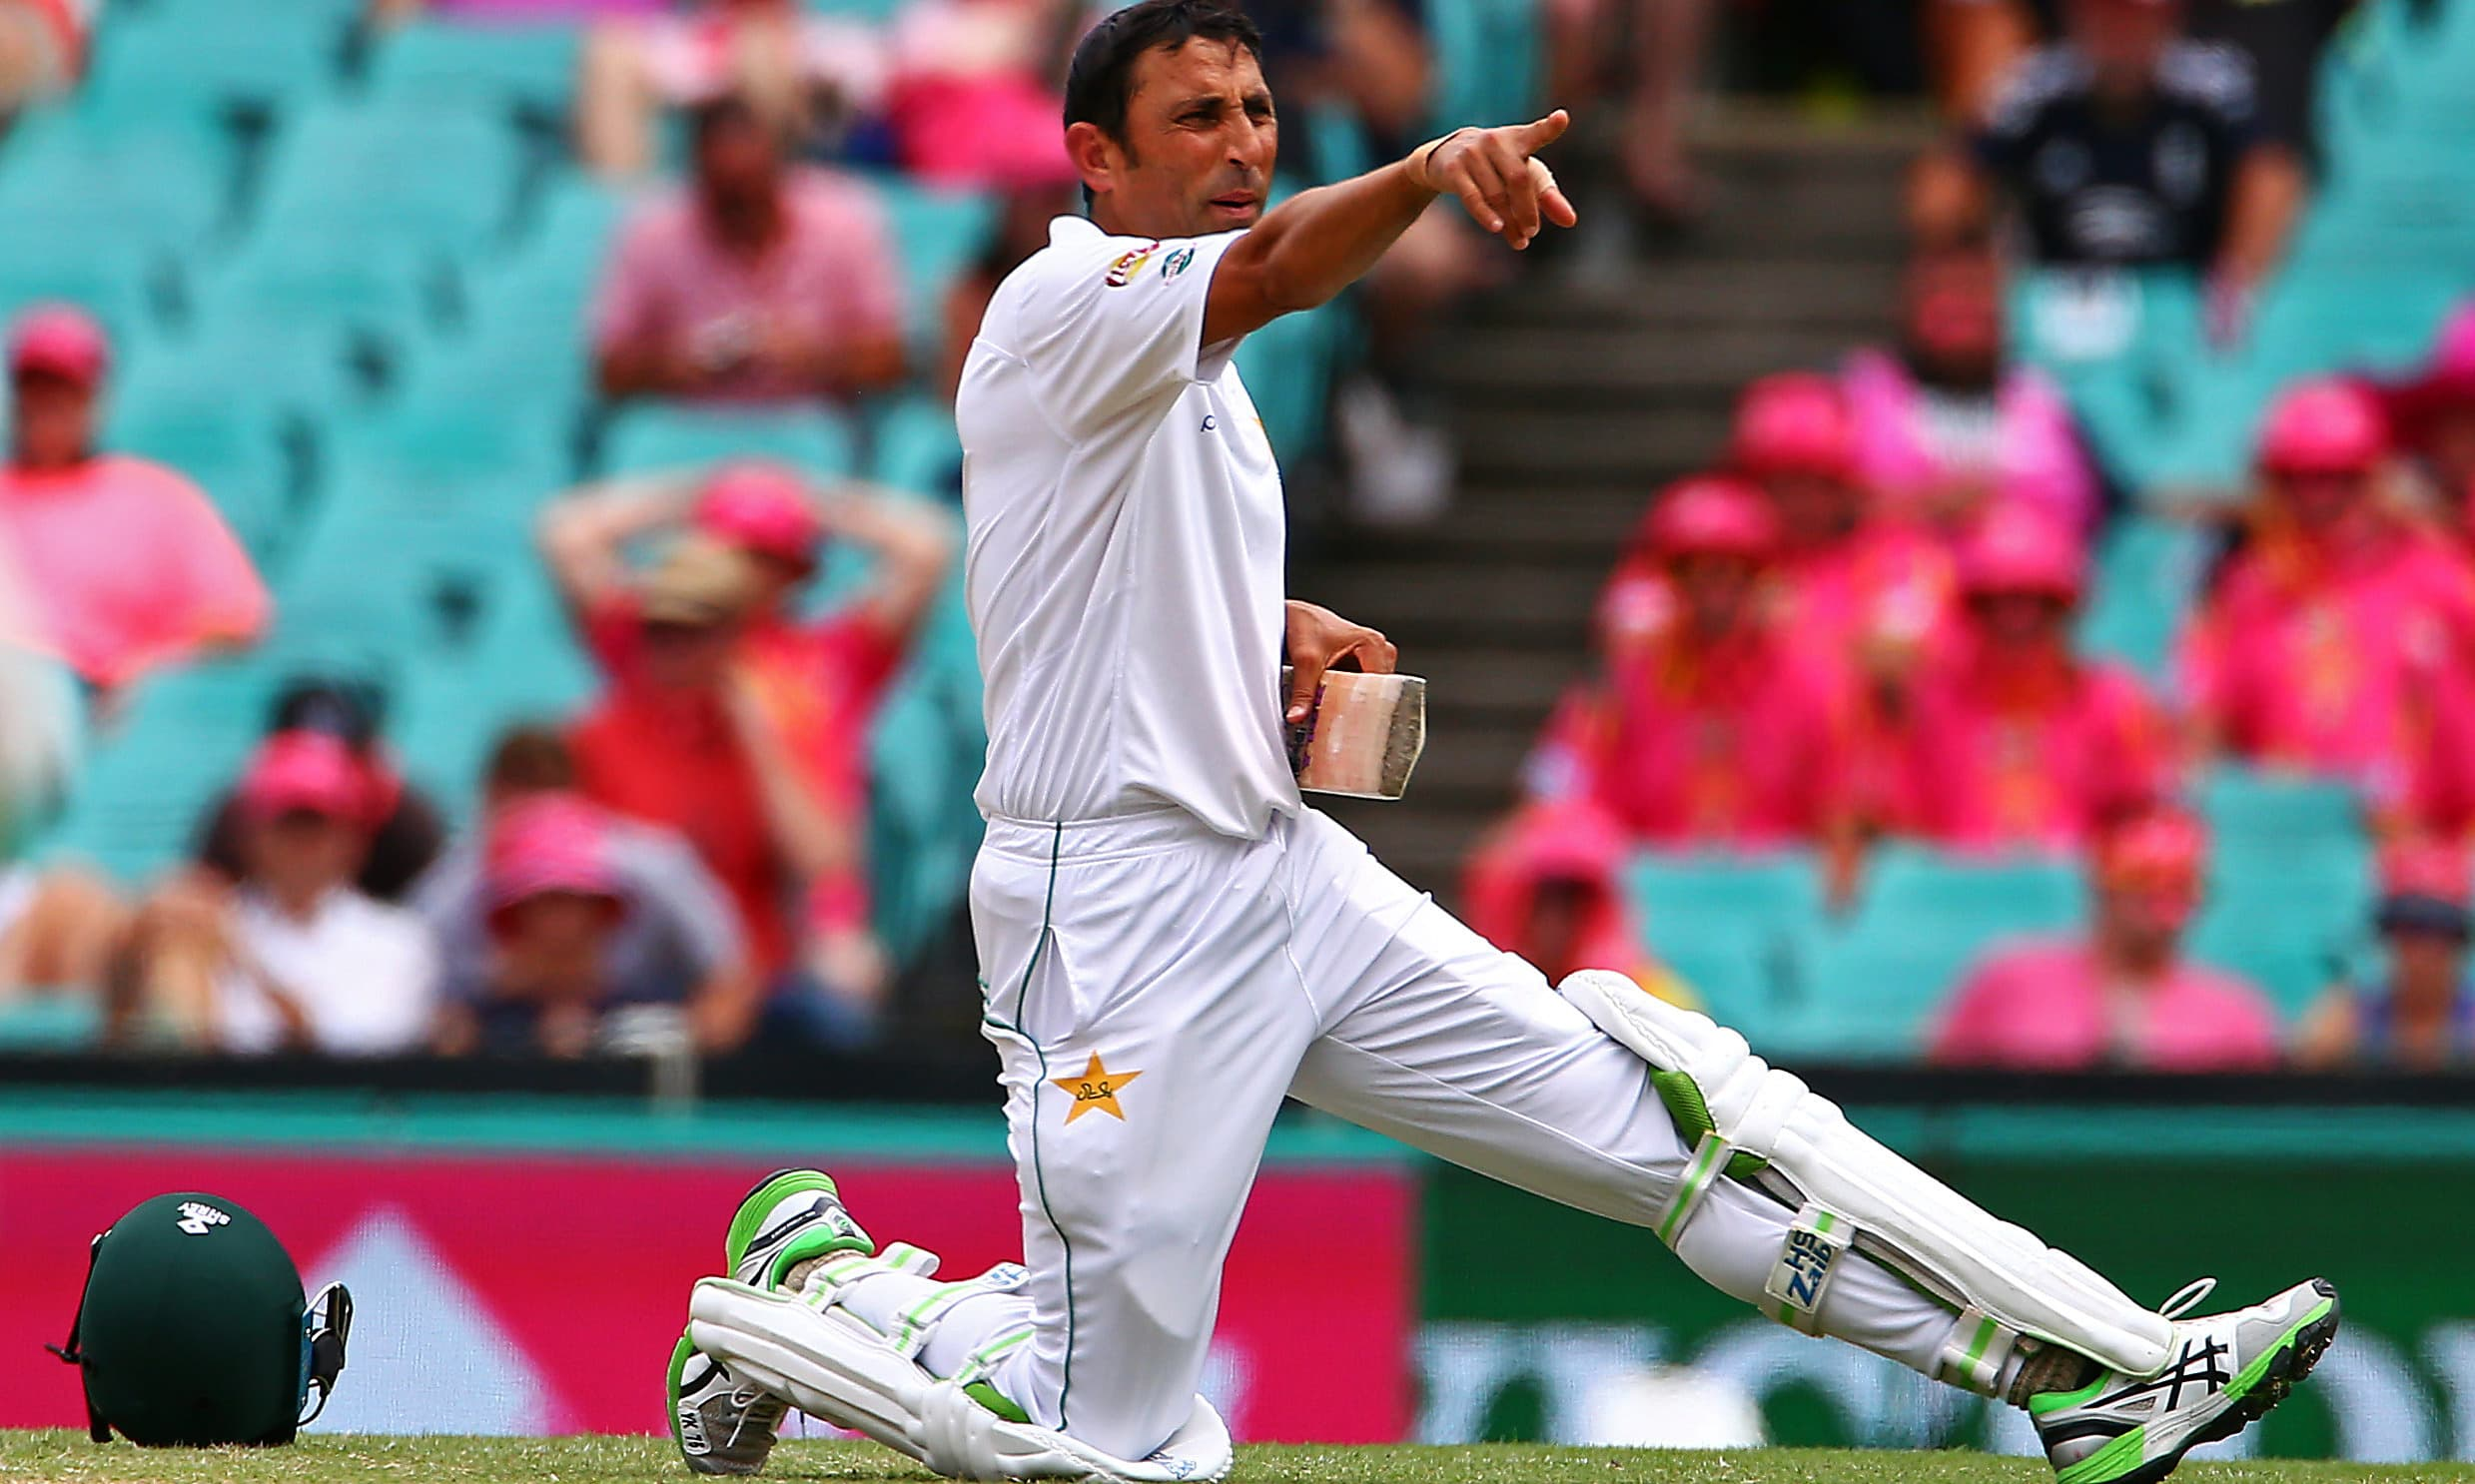 Younis Khan yells to team mates after damaging his bat. —Reuters